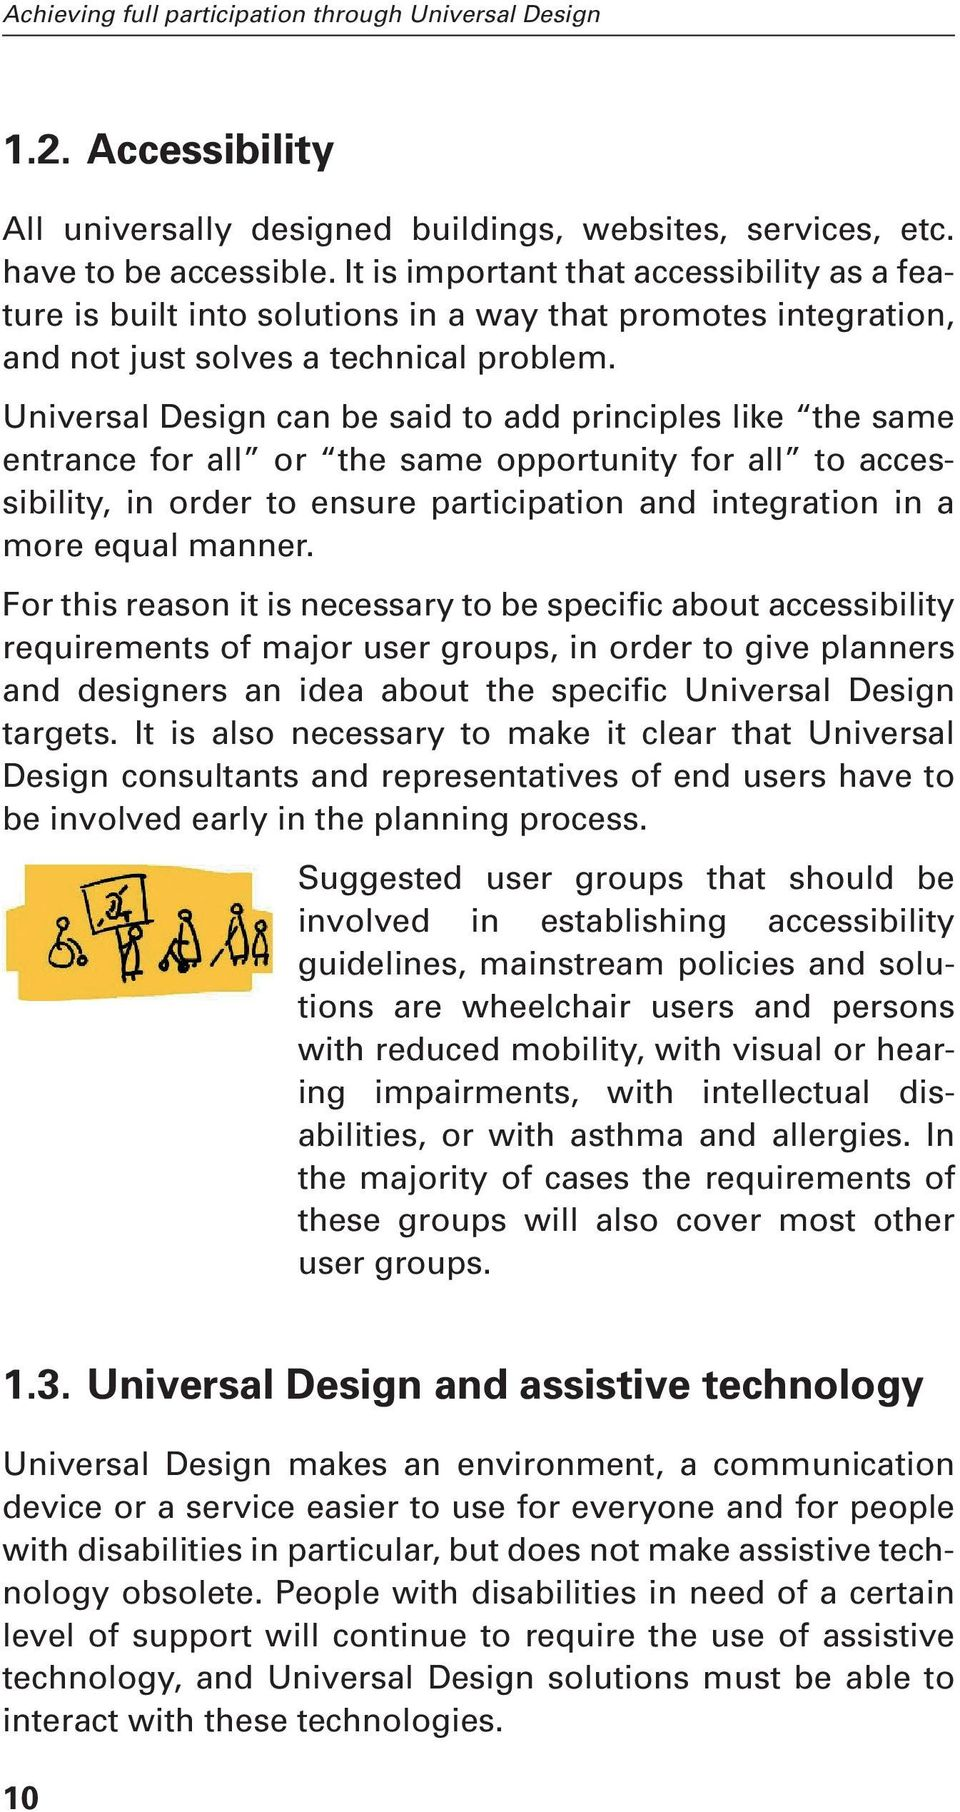 Universal Design can be said to add principles like the same entrance for all or the same opportunity for all to accessibility, in order to ensure participation and integration in a more equal manner.